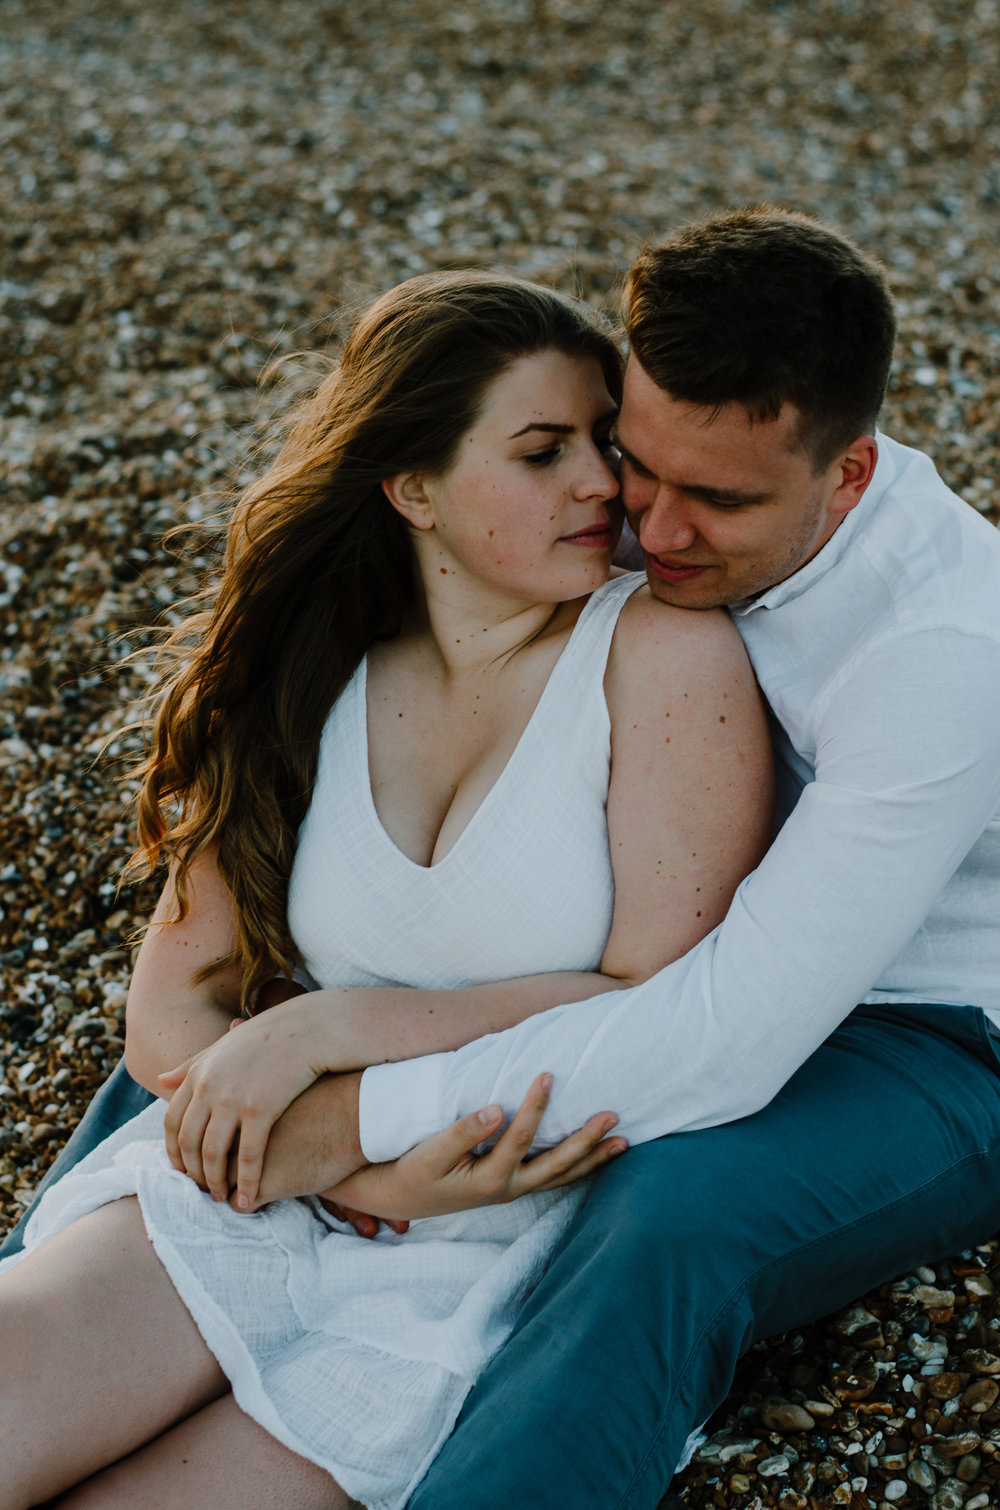 Ieva & Julius - Brighton Beach - Couple Session - Aiste Saulyte Photography-49.jpg